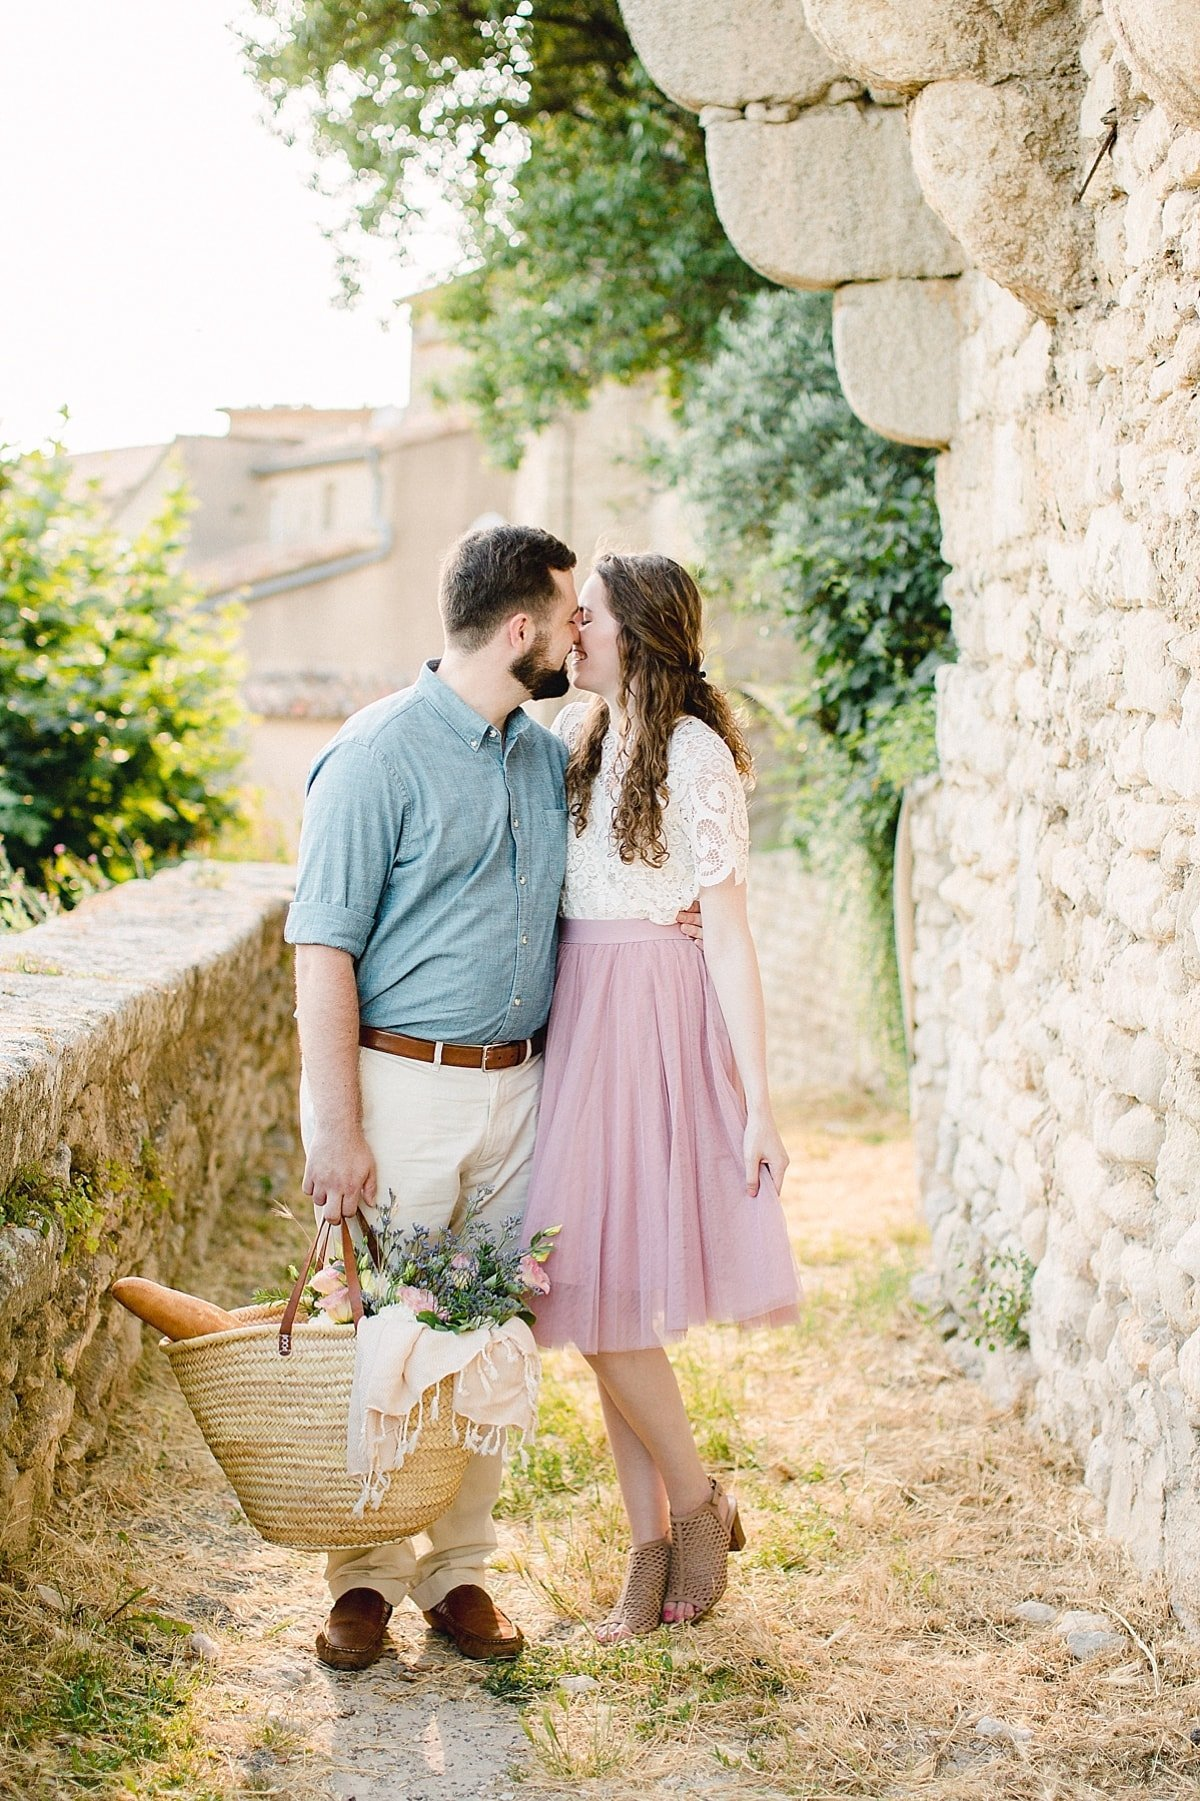 provence-france-lavender-anniversary-session-alicia-yarrish-photography-4-min